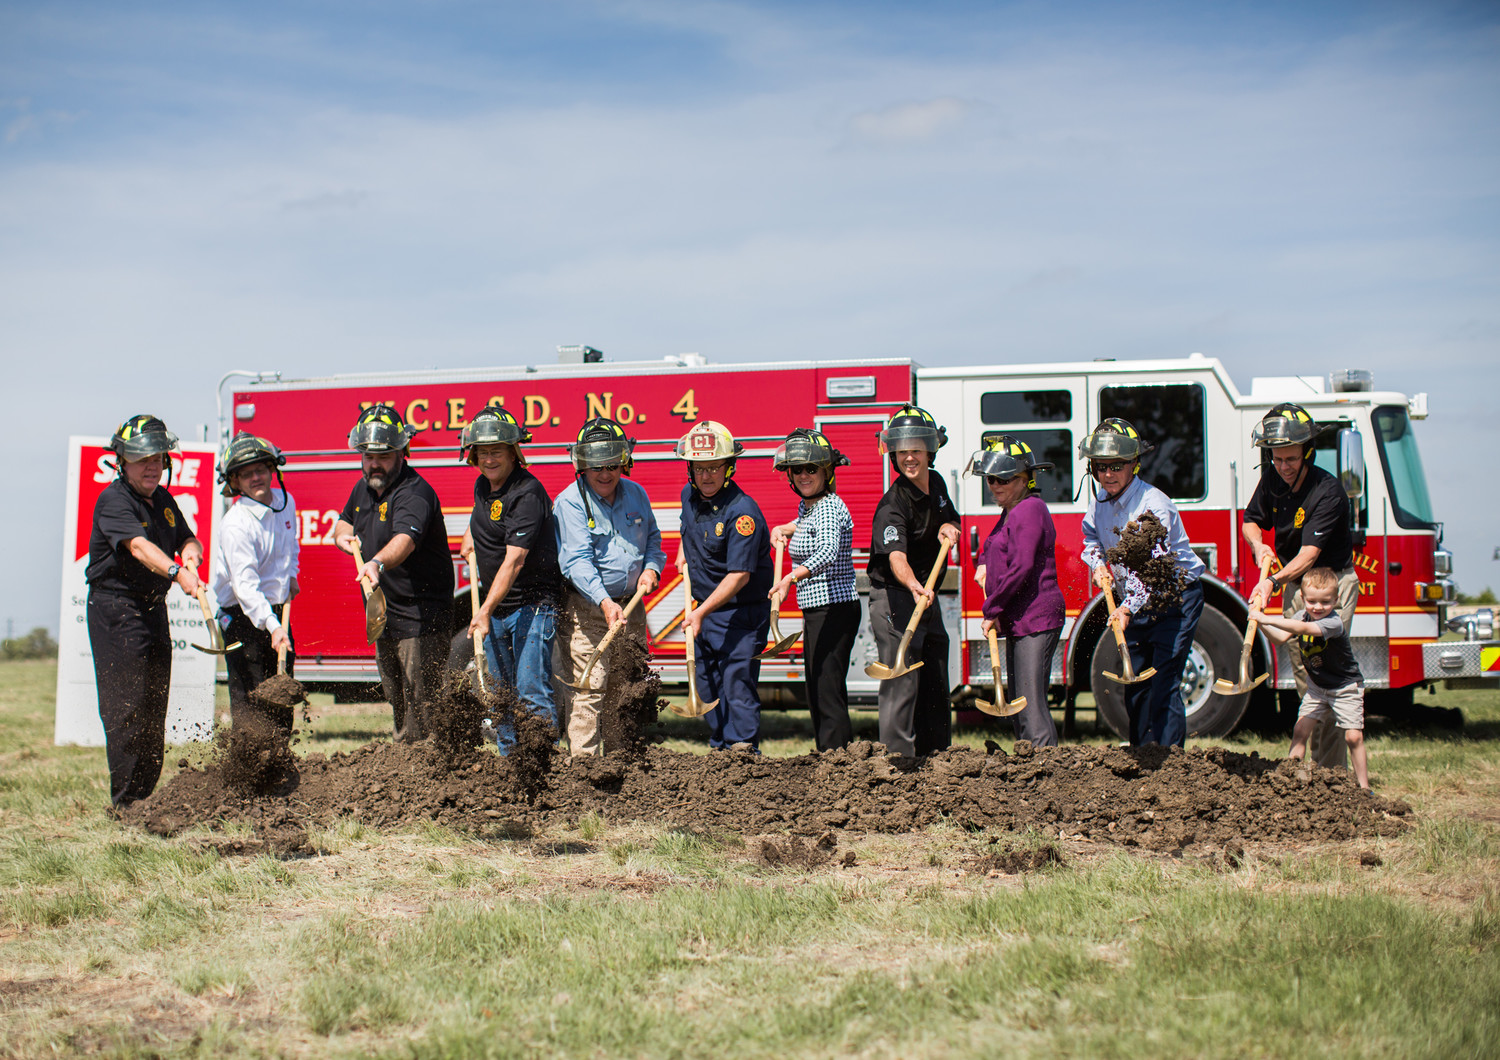 Officials with Williamson County Emergency Services District No. 4/Liberty Hill Fire Department recently broke ground on a fire station that will be located in Santa Rita Ranch. It will be the department's second fire station when it opens next year.